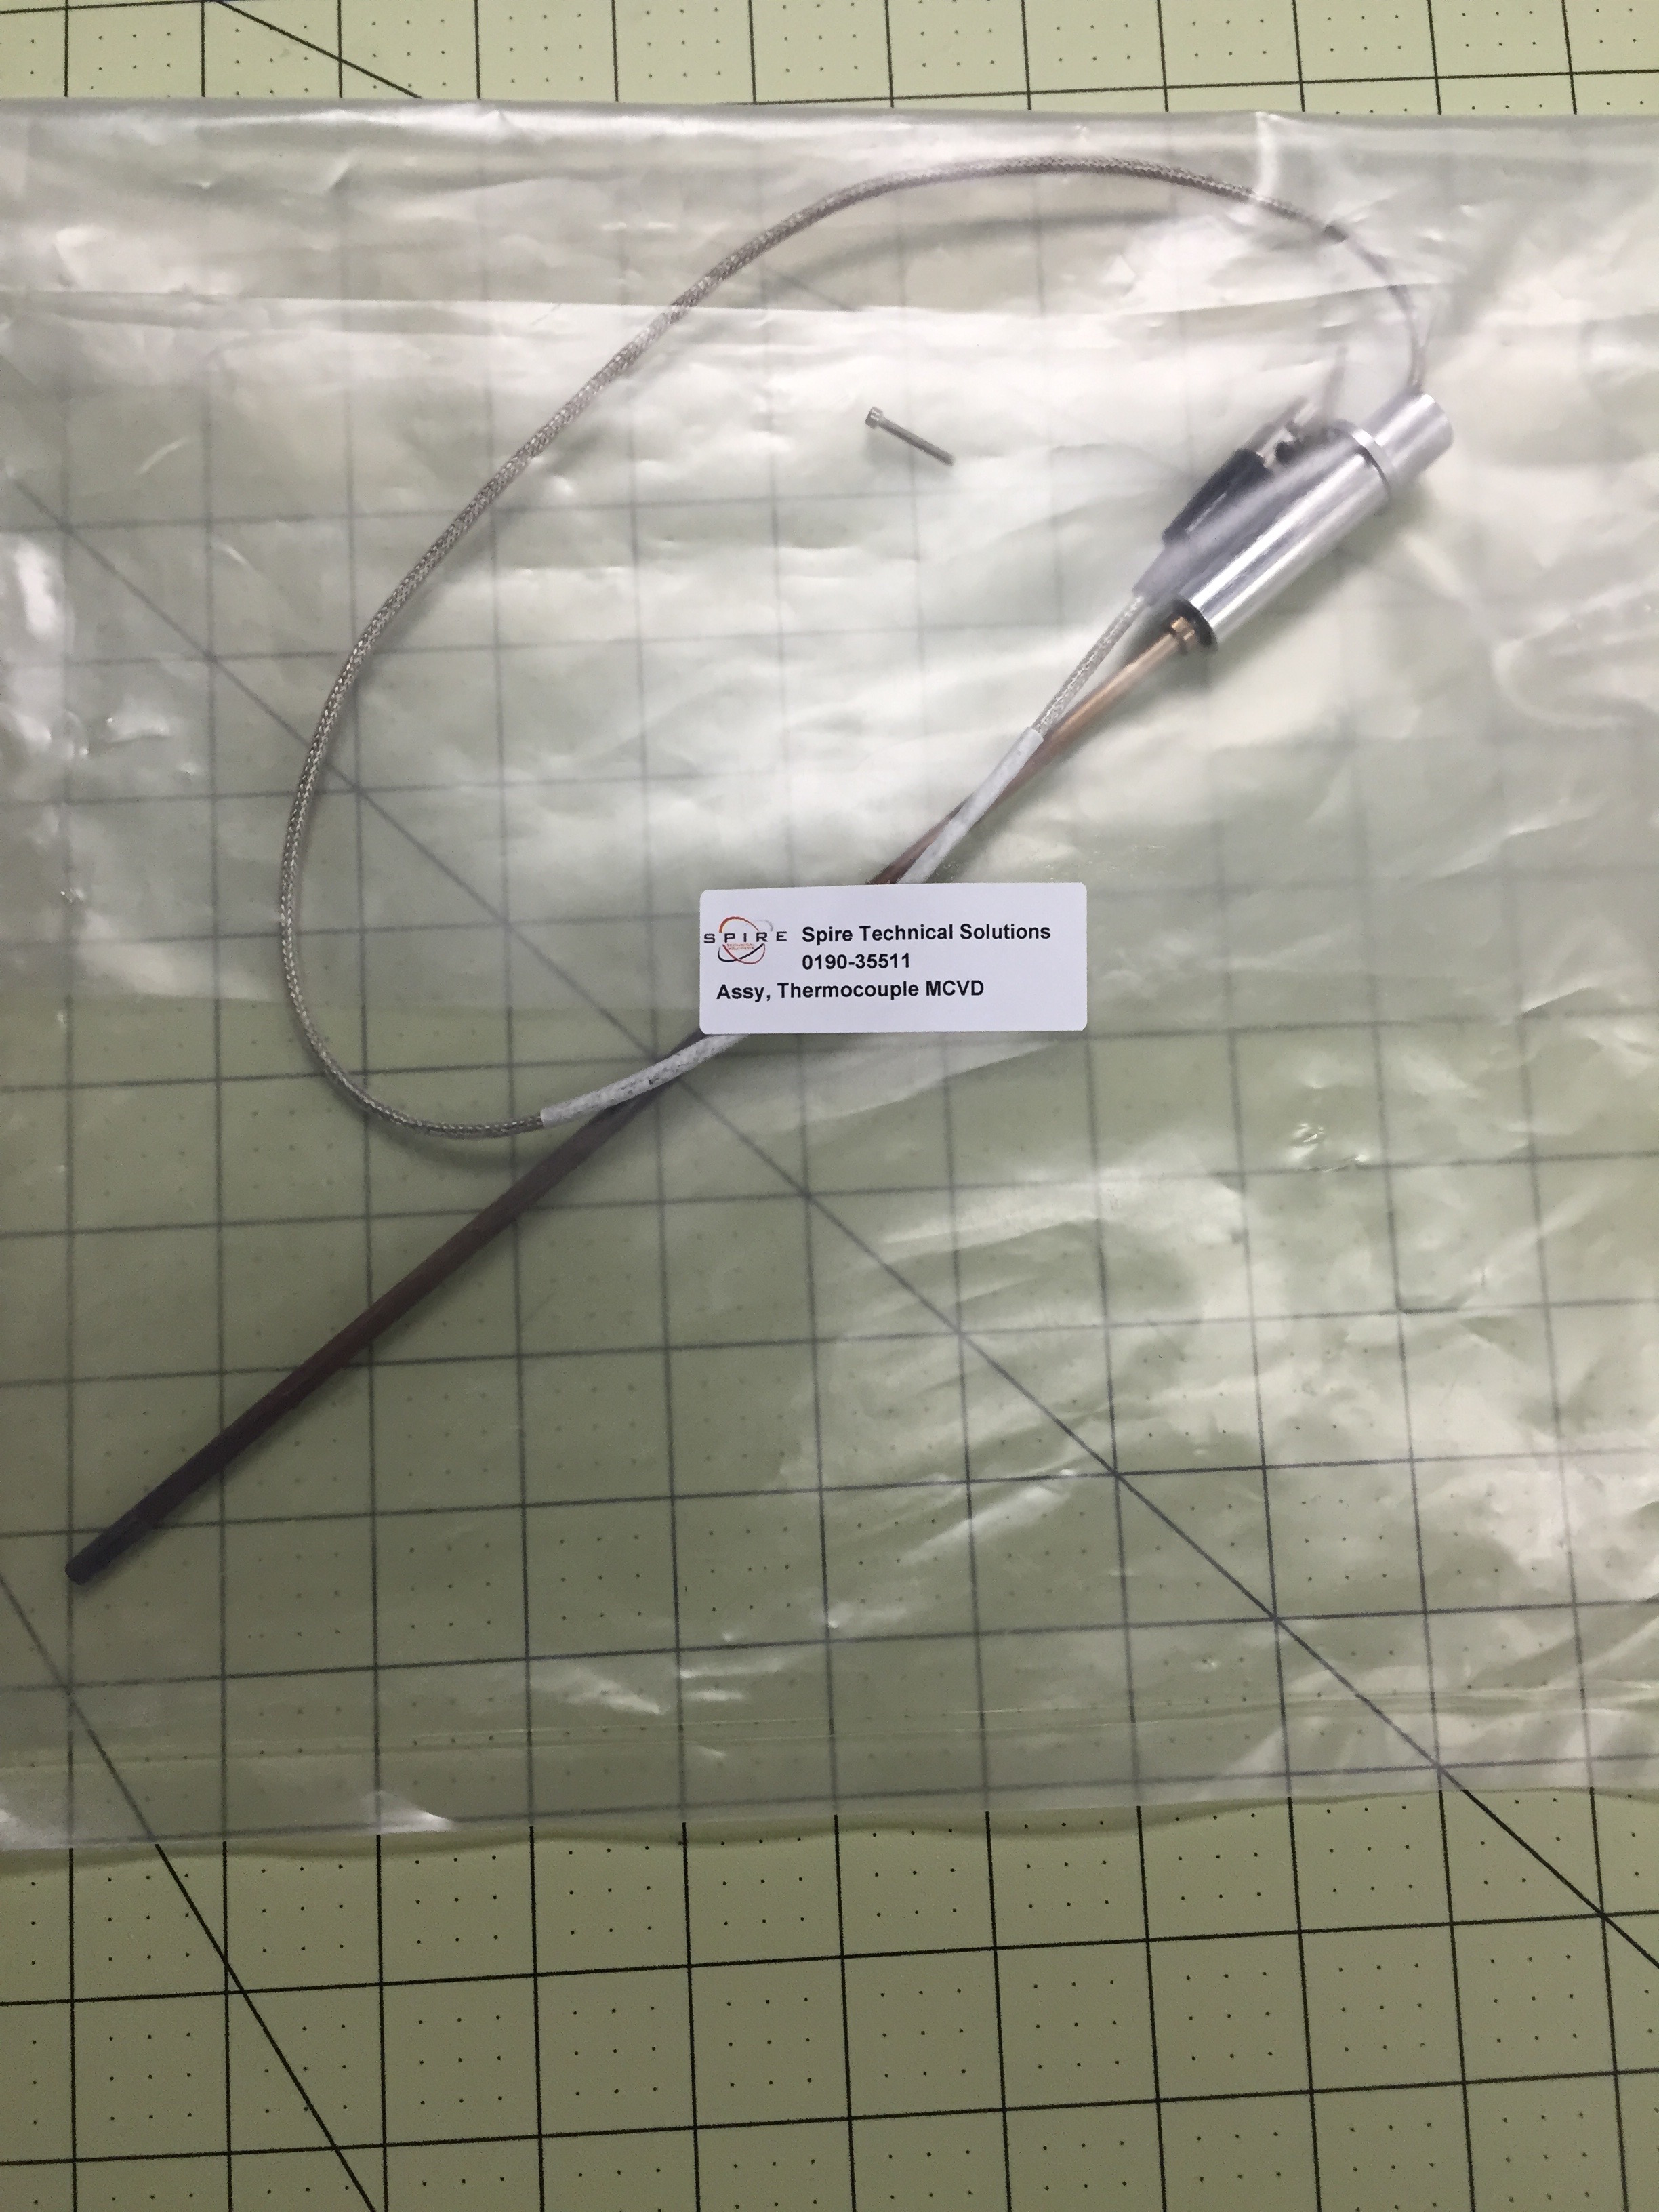 Assy, Thermocouple MCVD